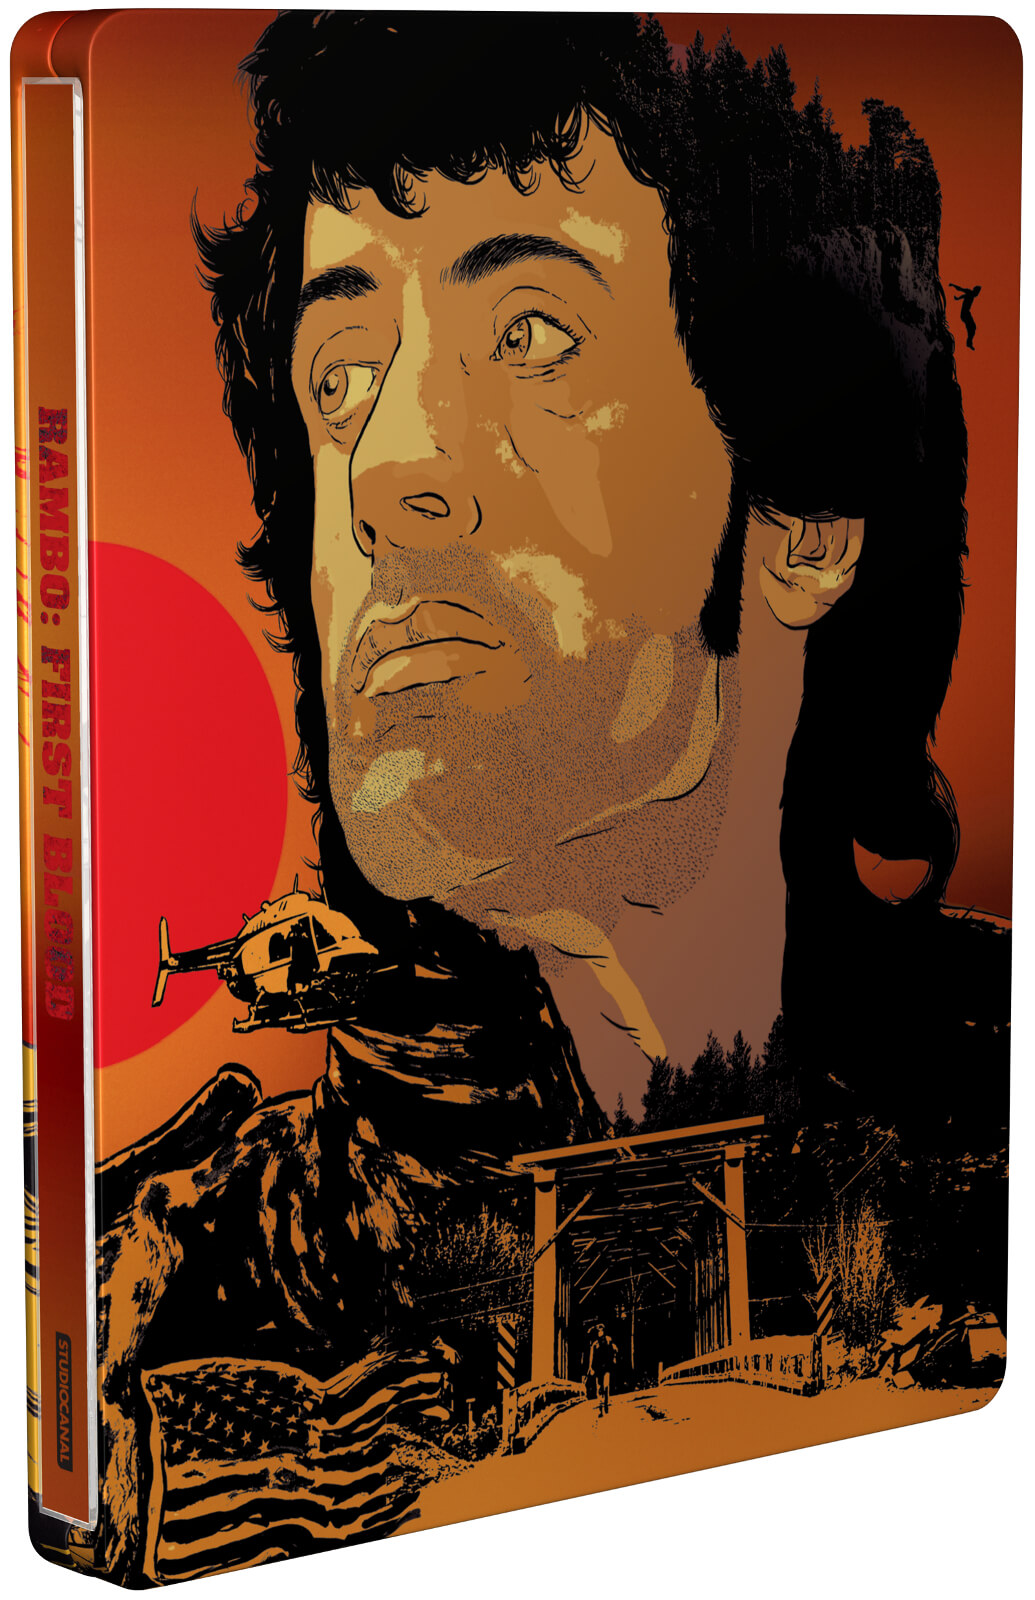 Rambo: First Blood SteelBook front